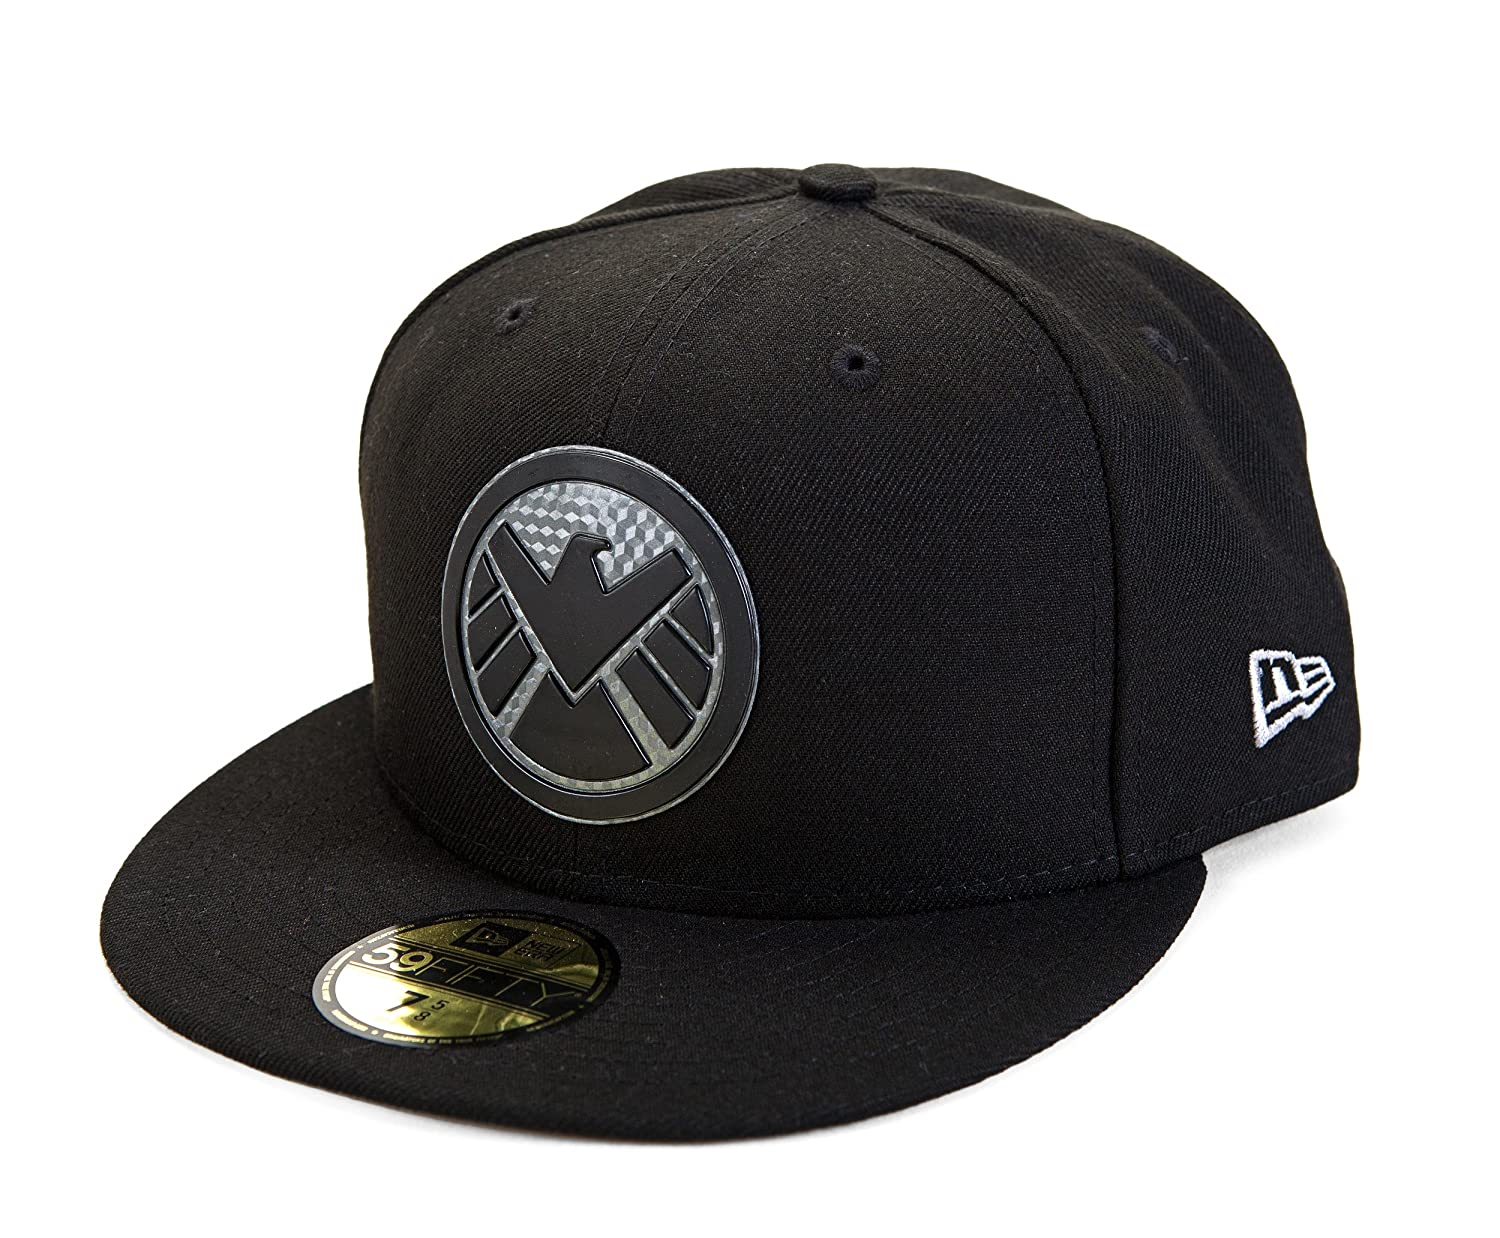 Diamond Distributors HAT メンズ B079QJH643 7.25